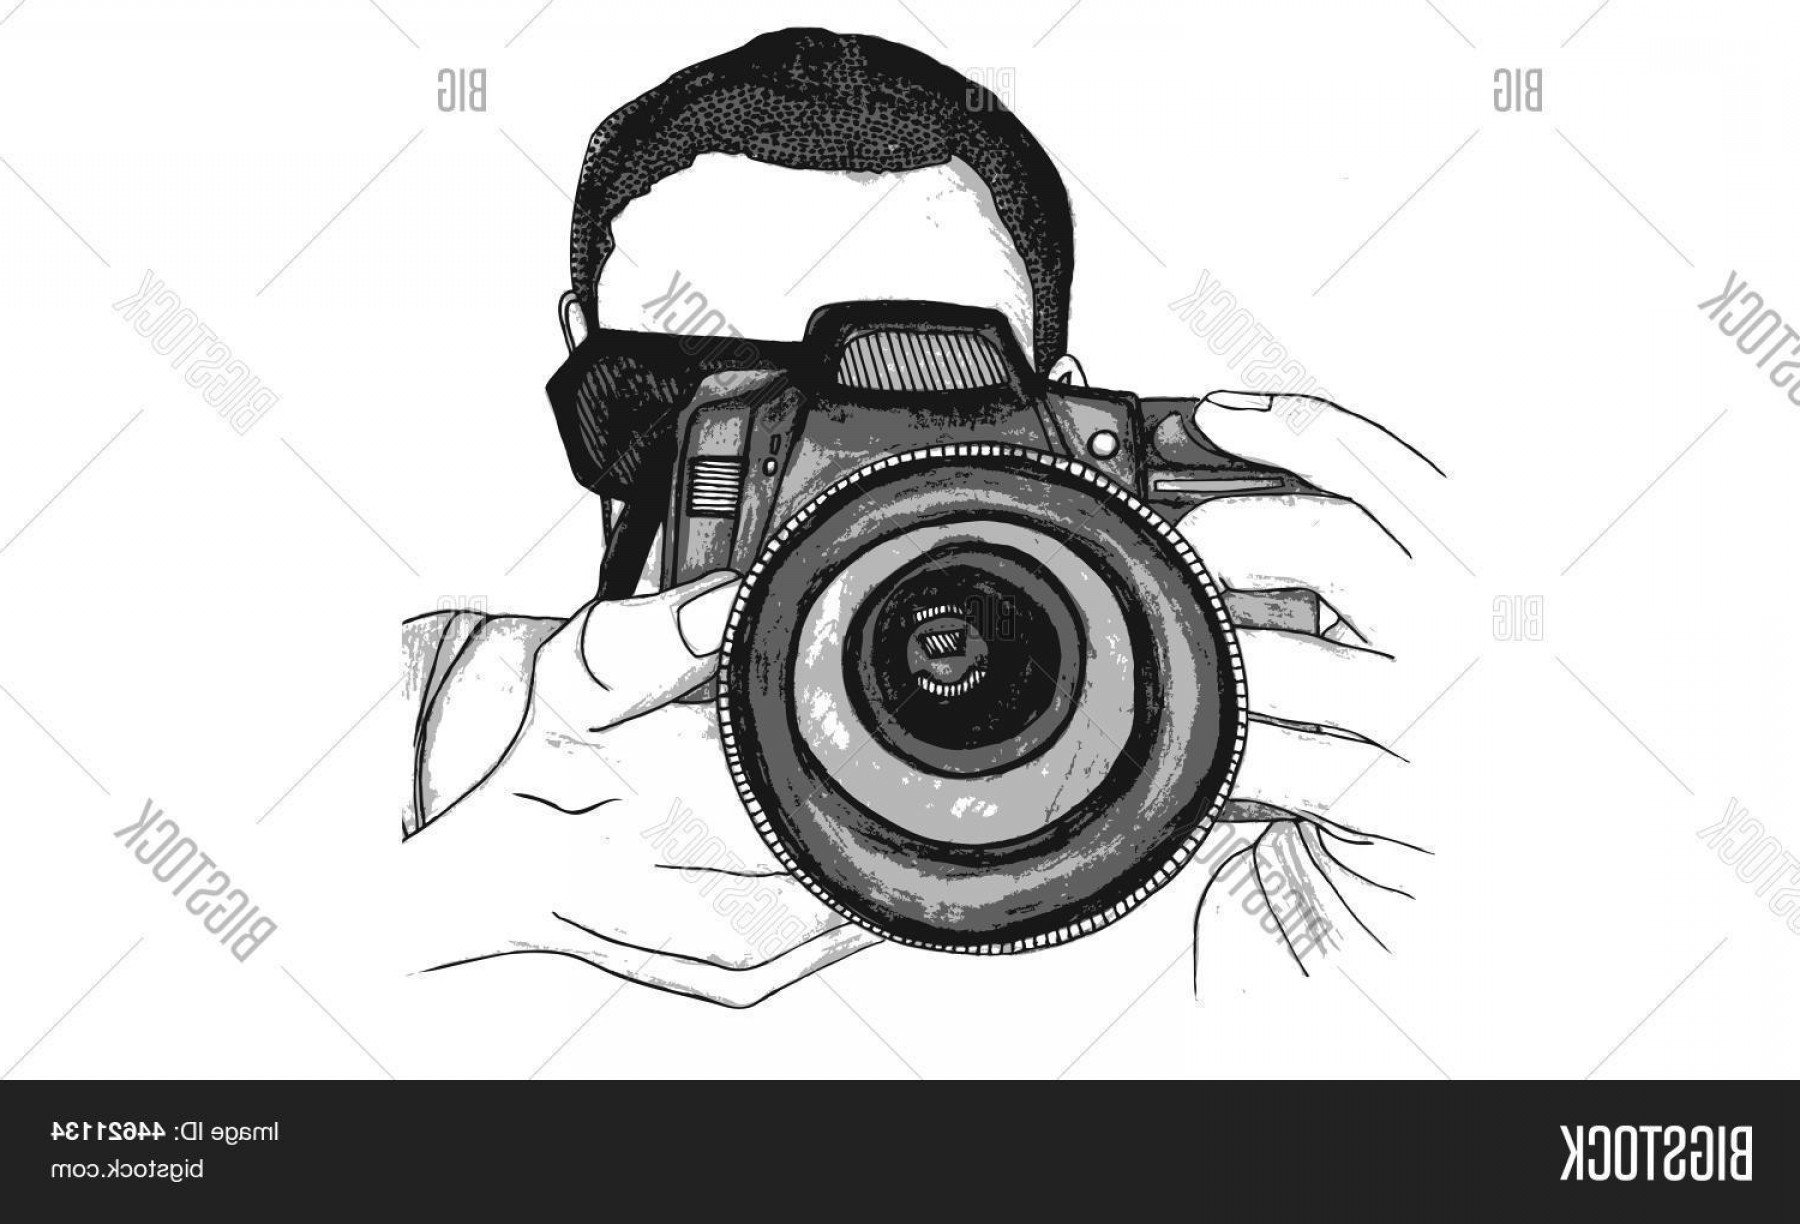 SLR Camera Vector: Stock Vector Isolated Vector Watercolour Illustration Of A Male Photographer With A Digital Slr Camera